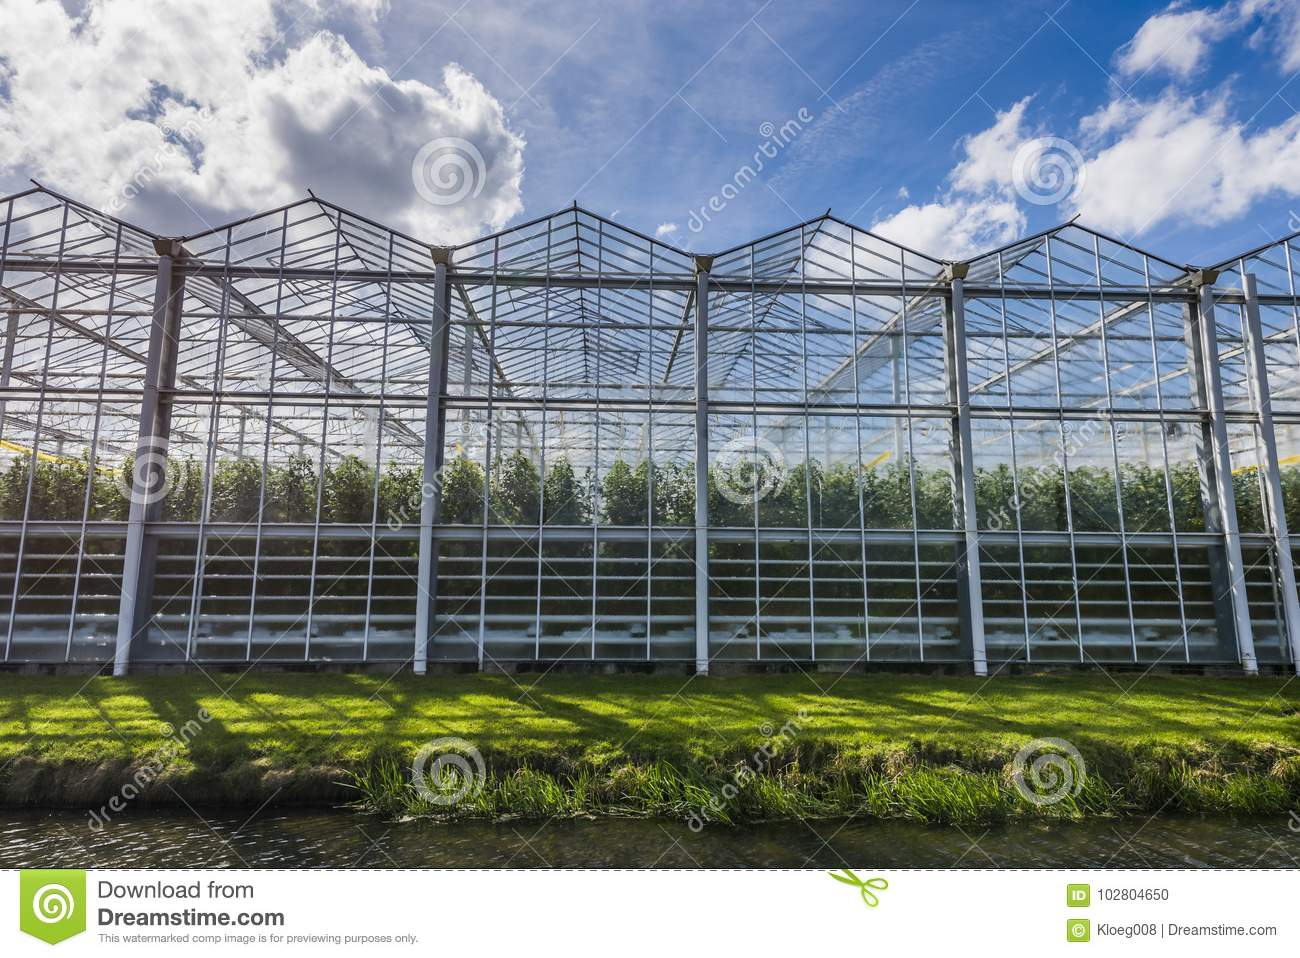 Tomato Greenhouse Harmelen with Clouds